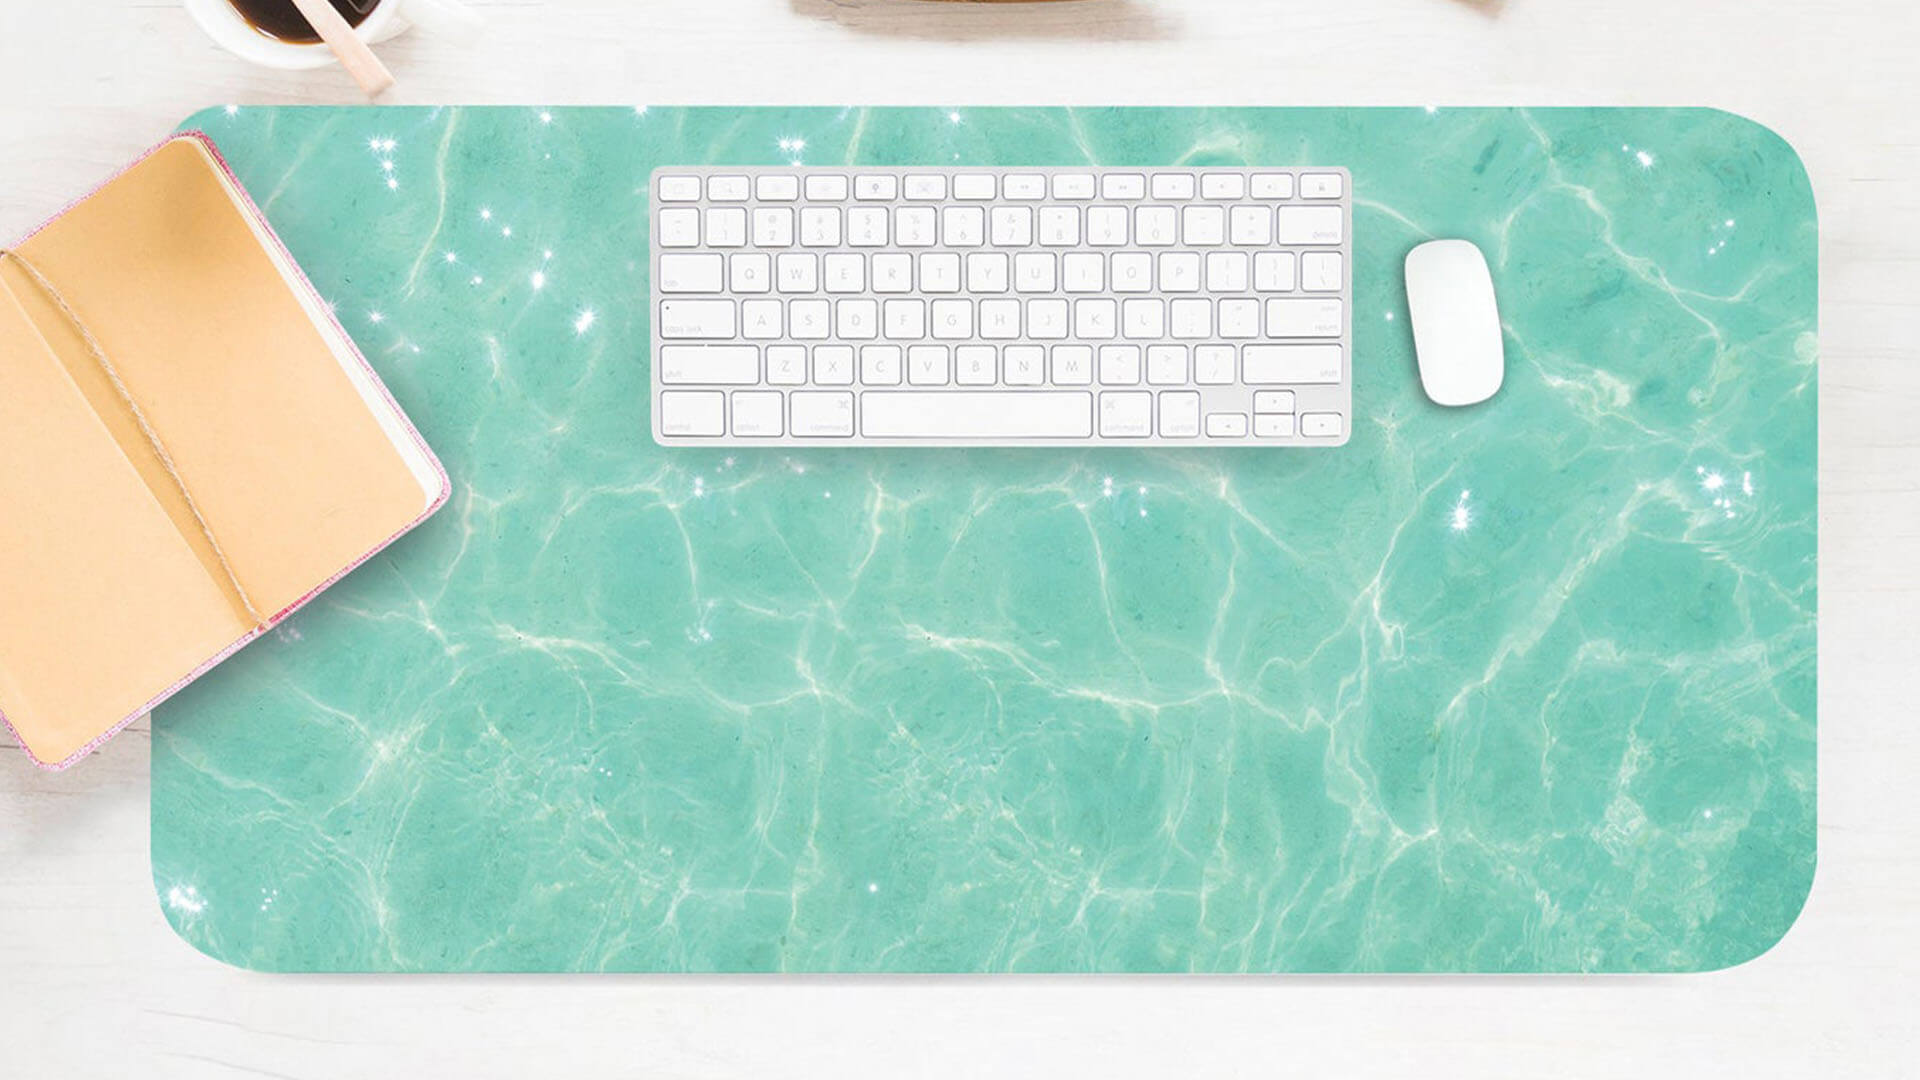 Clear Water Aesthetic Desk Cover